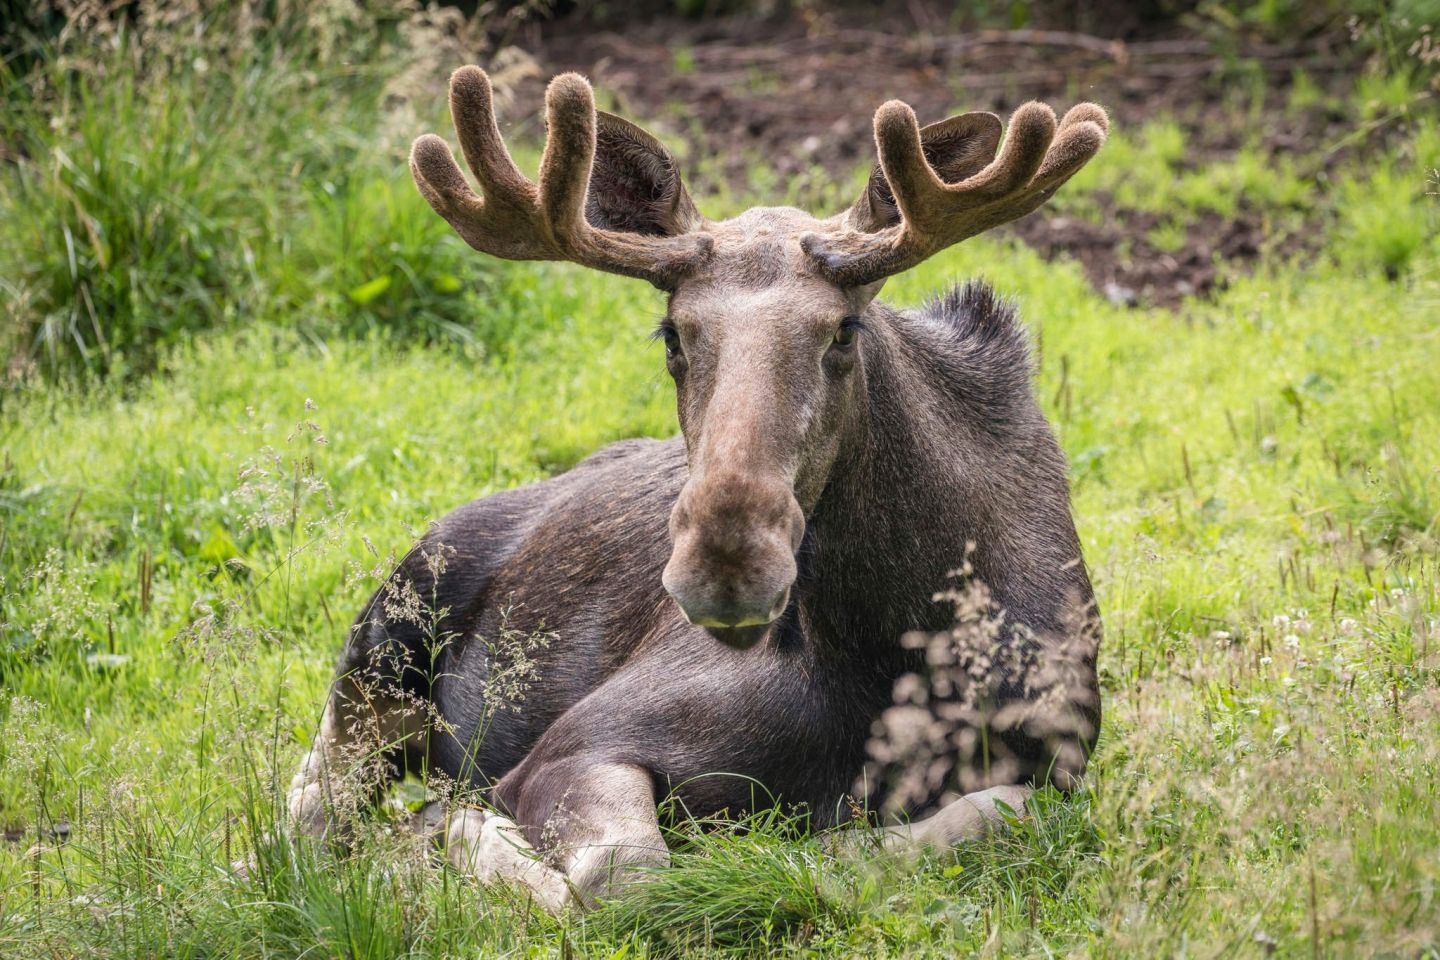 Moose, part of the Arctic wildlife you'll find in Finnish Lapland